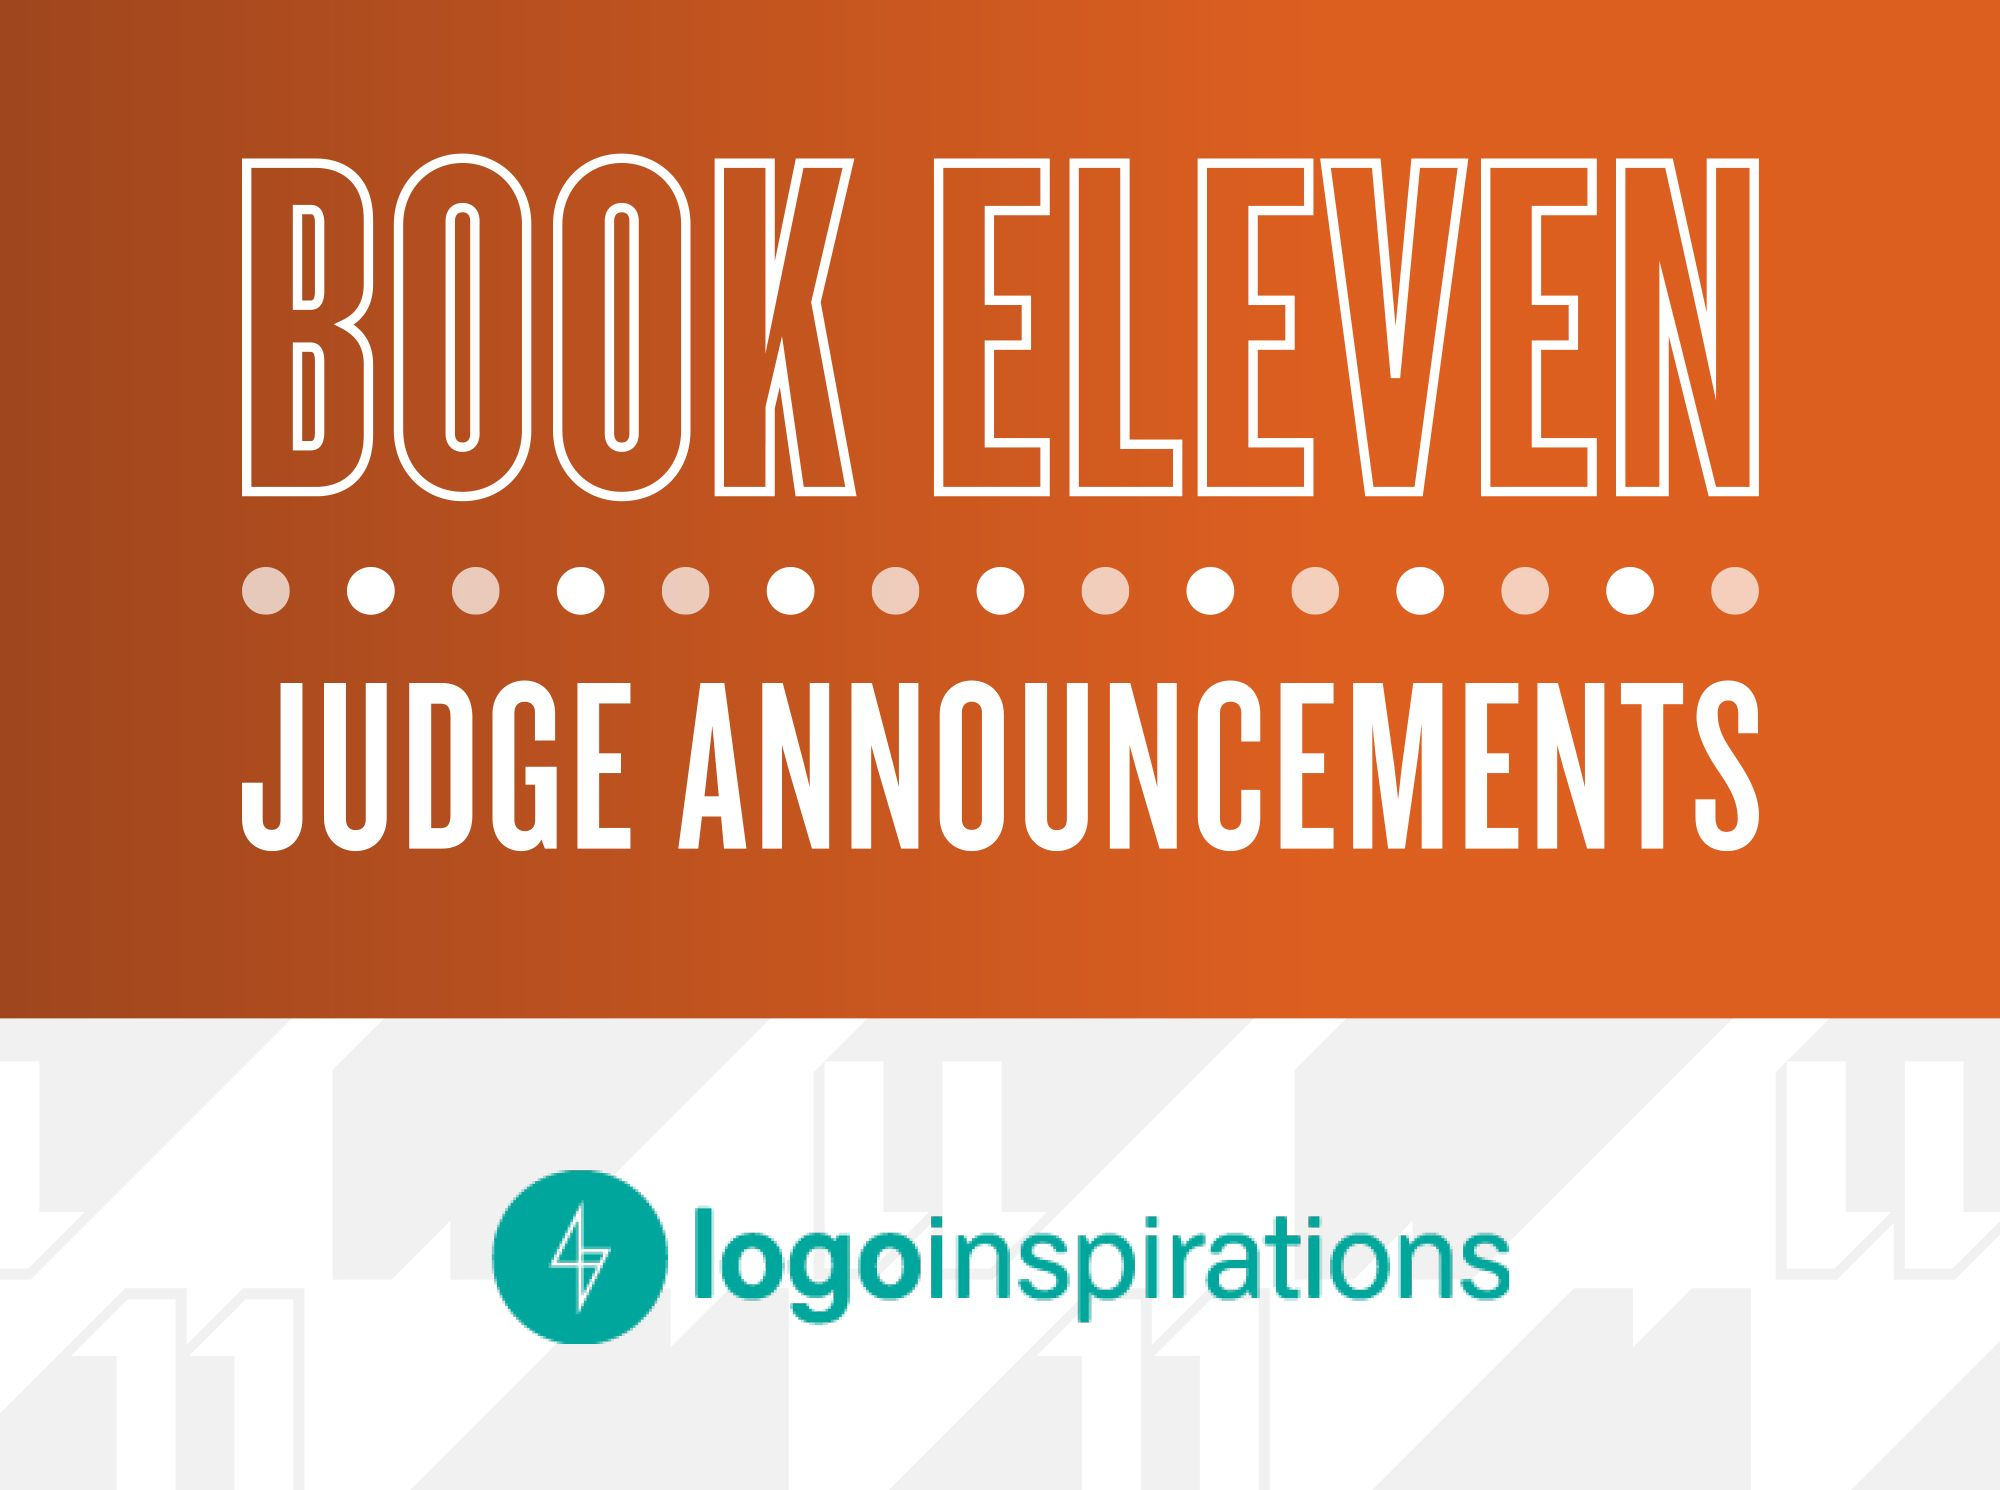 The LogoLounge Book 11 judges are being announced via ...